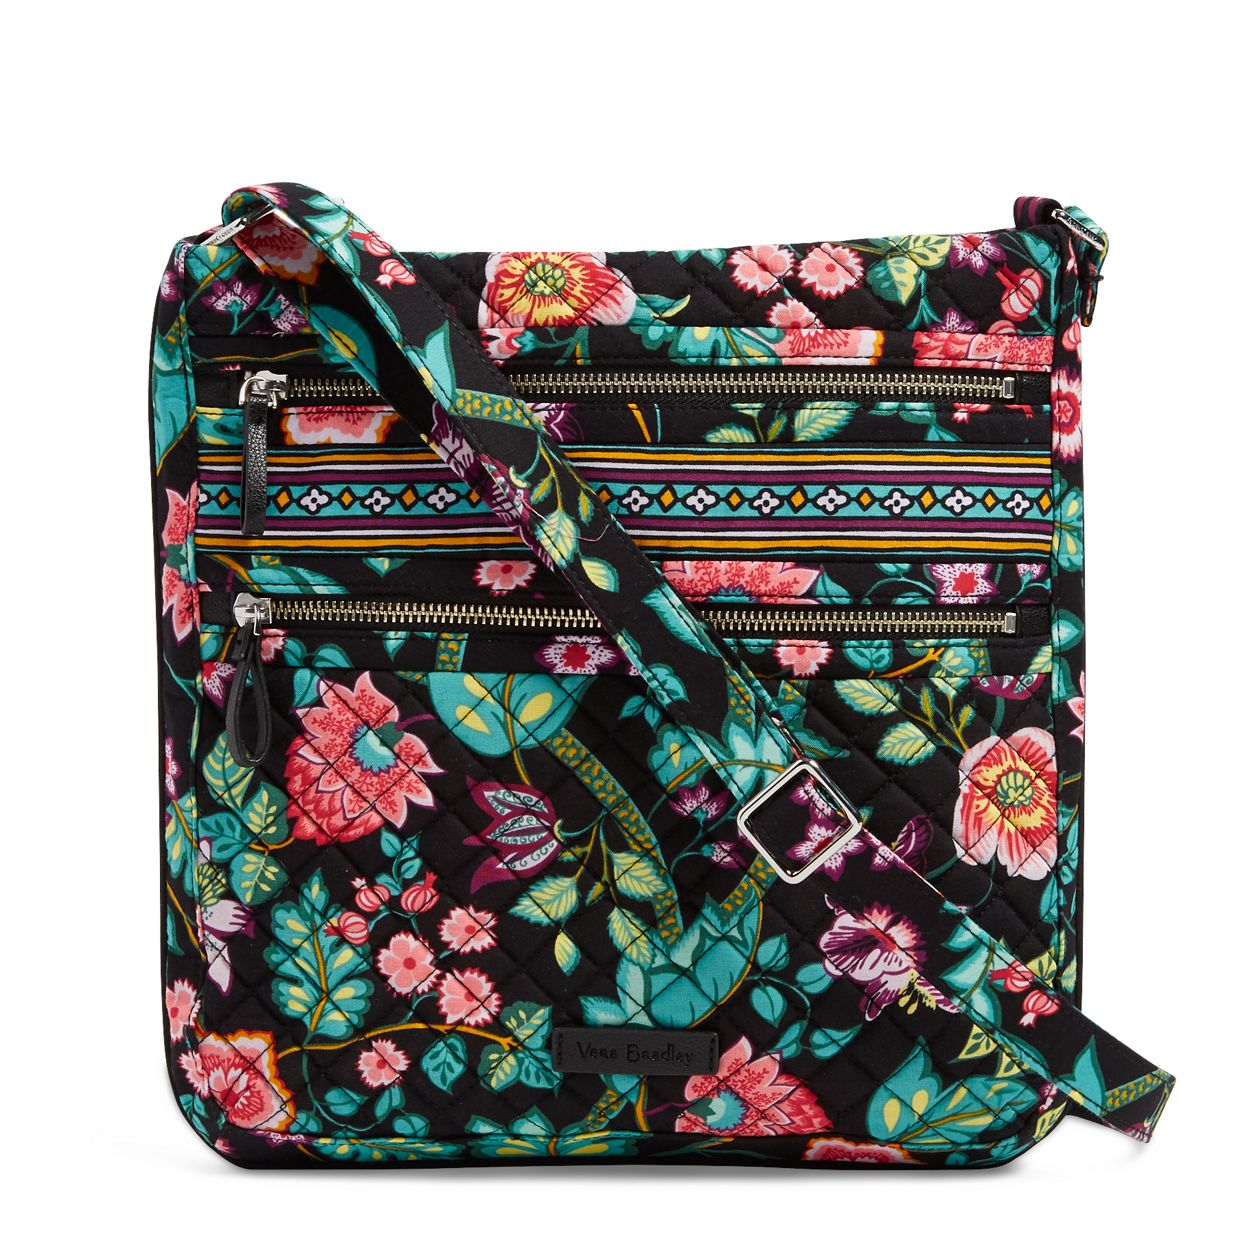 Image of Iconic Triple Zip Hipster in Vines Floral a34050cae3a8b